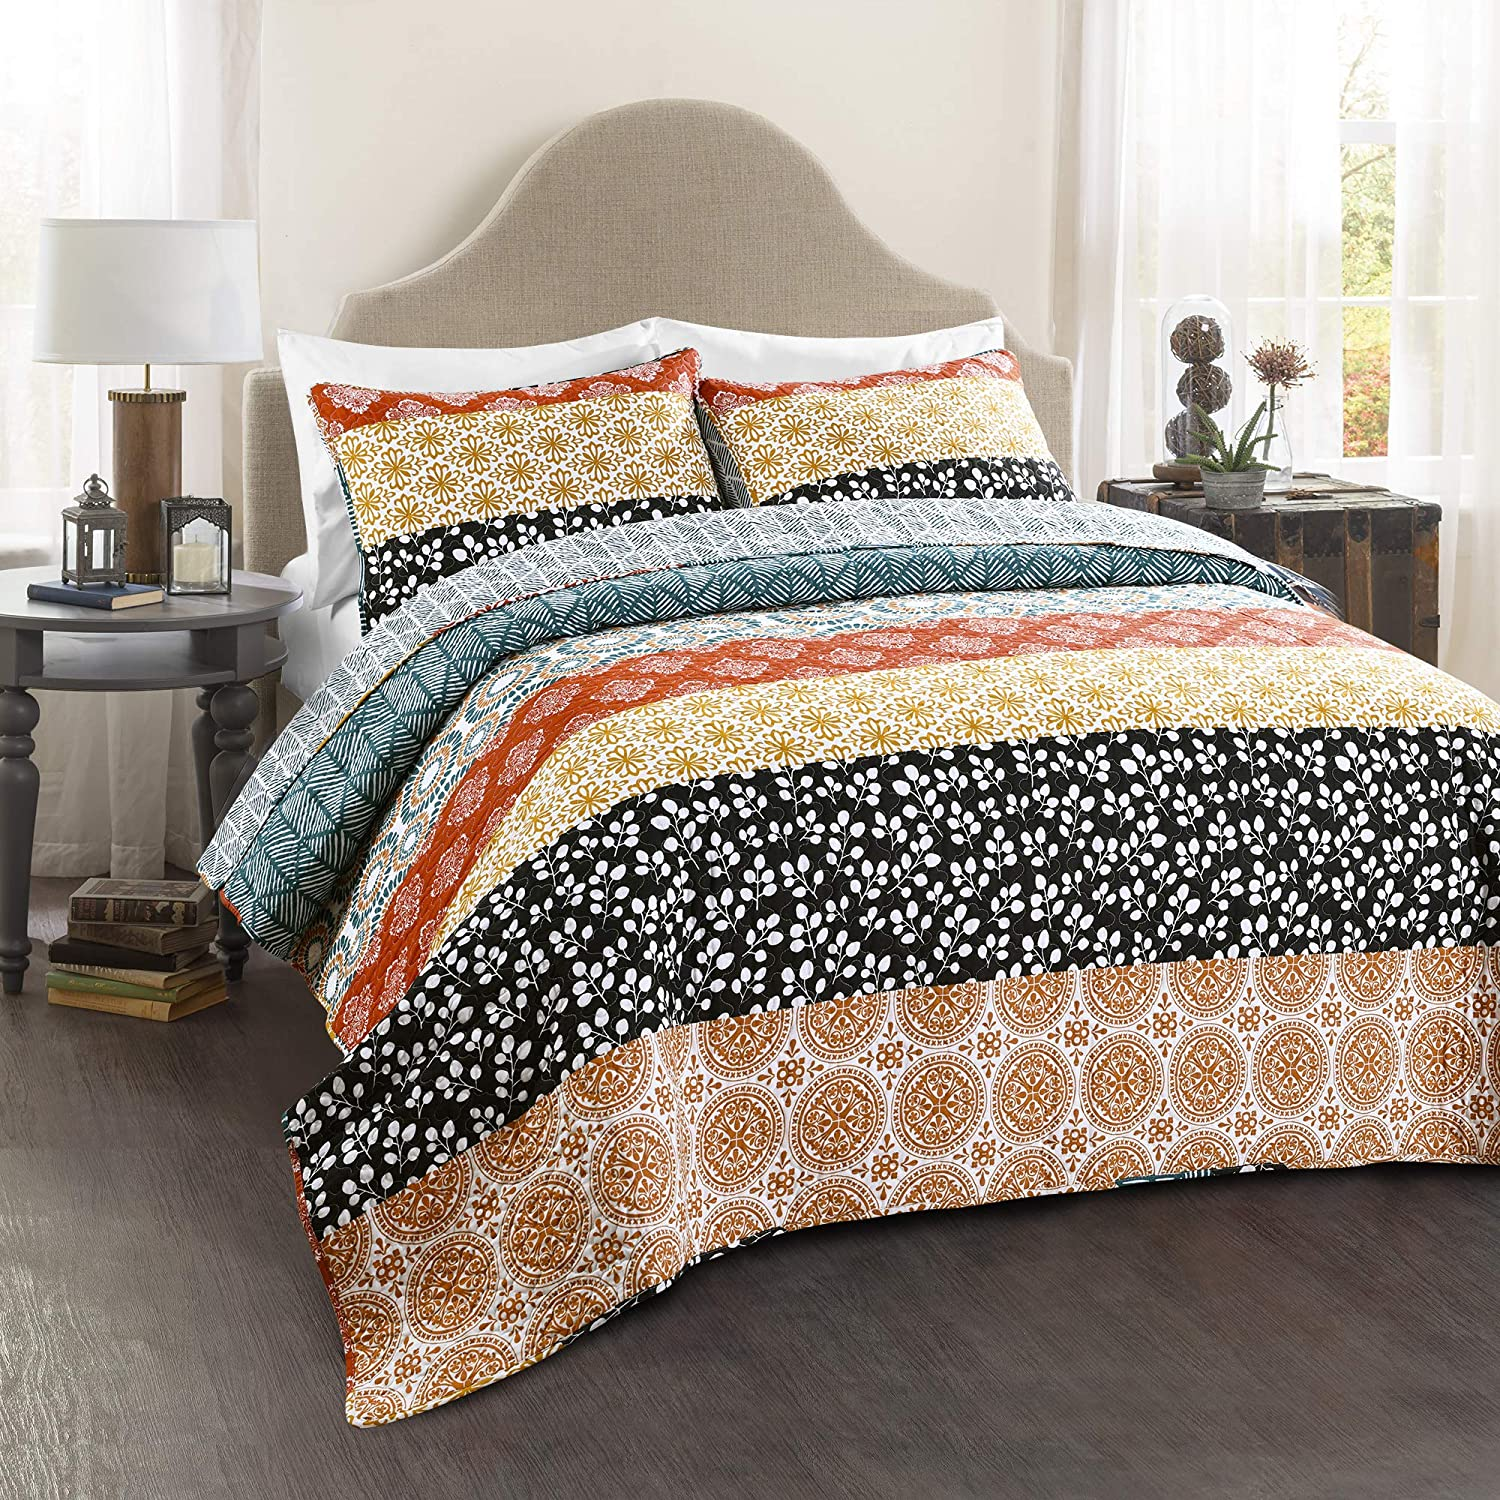 Lush Decor Bohemian Striped Quilt Reversible 3 Piece Colorful Boho Design Bedding Set Full Queen Turquoise Triangle Home Fashions C43134P15-000